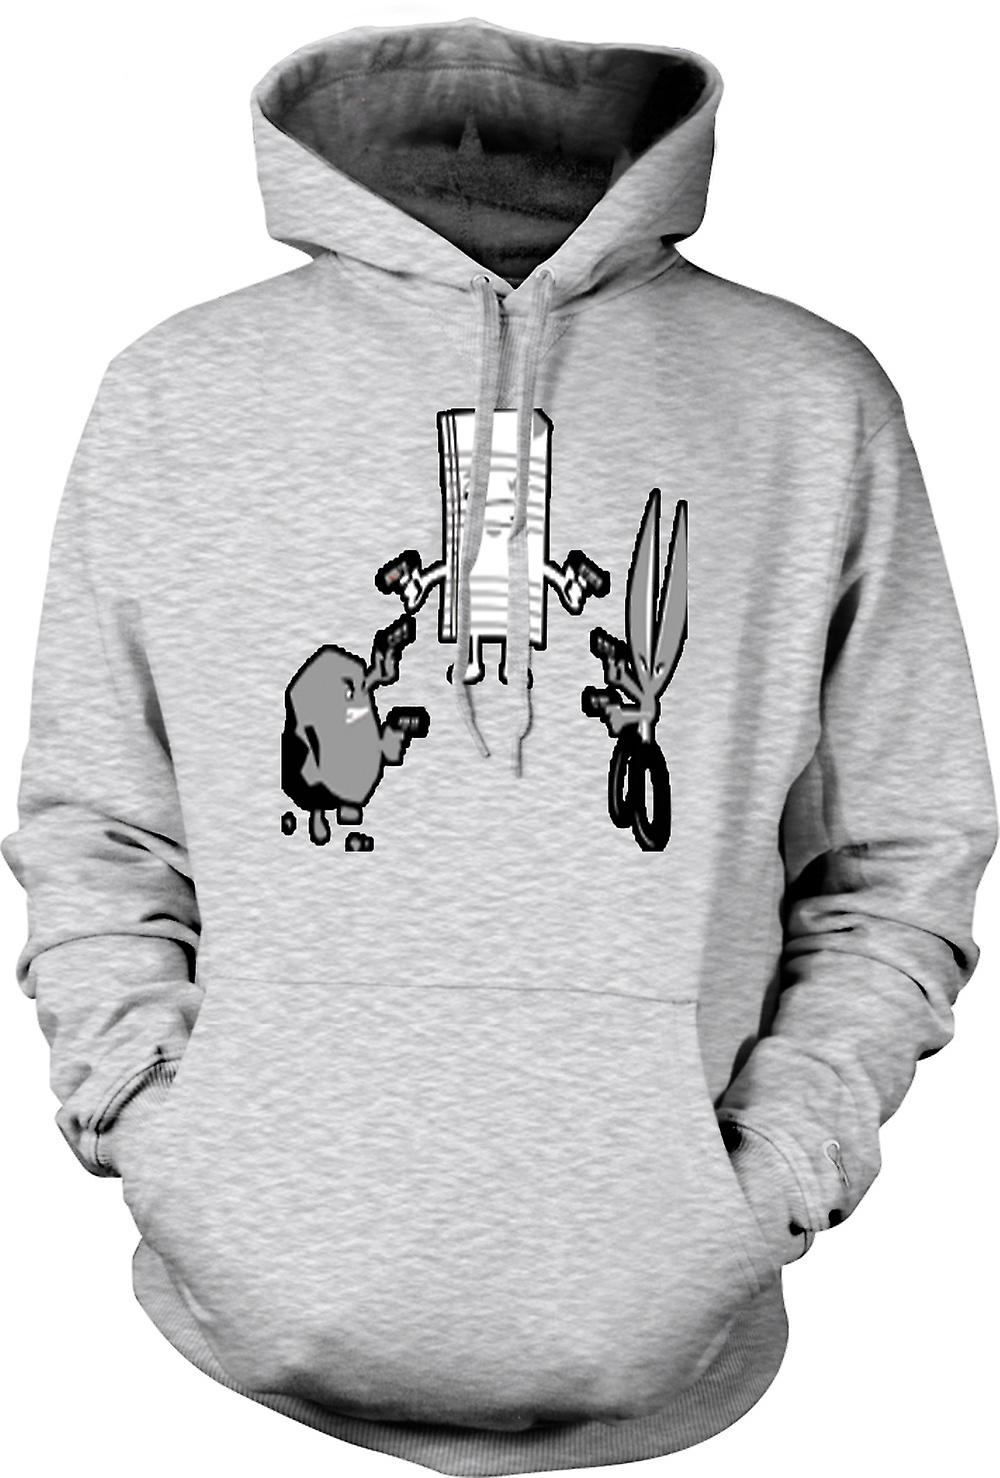 Mens Hoodie - Rock papper sax Shoot - ut